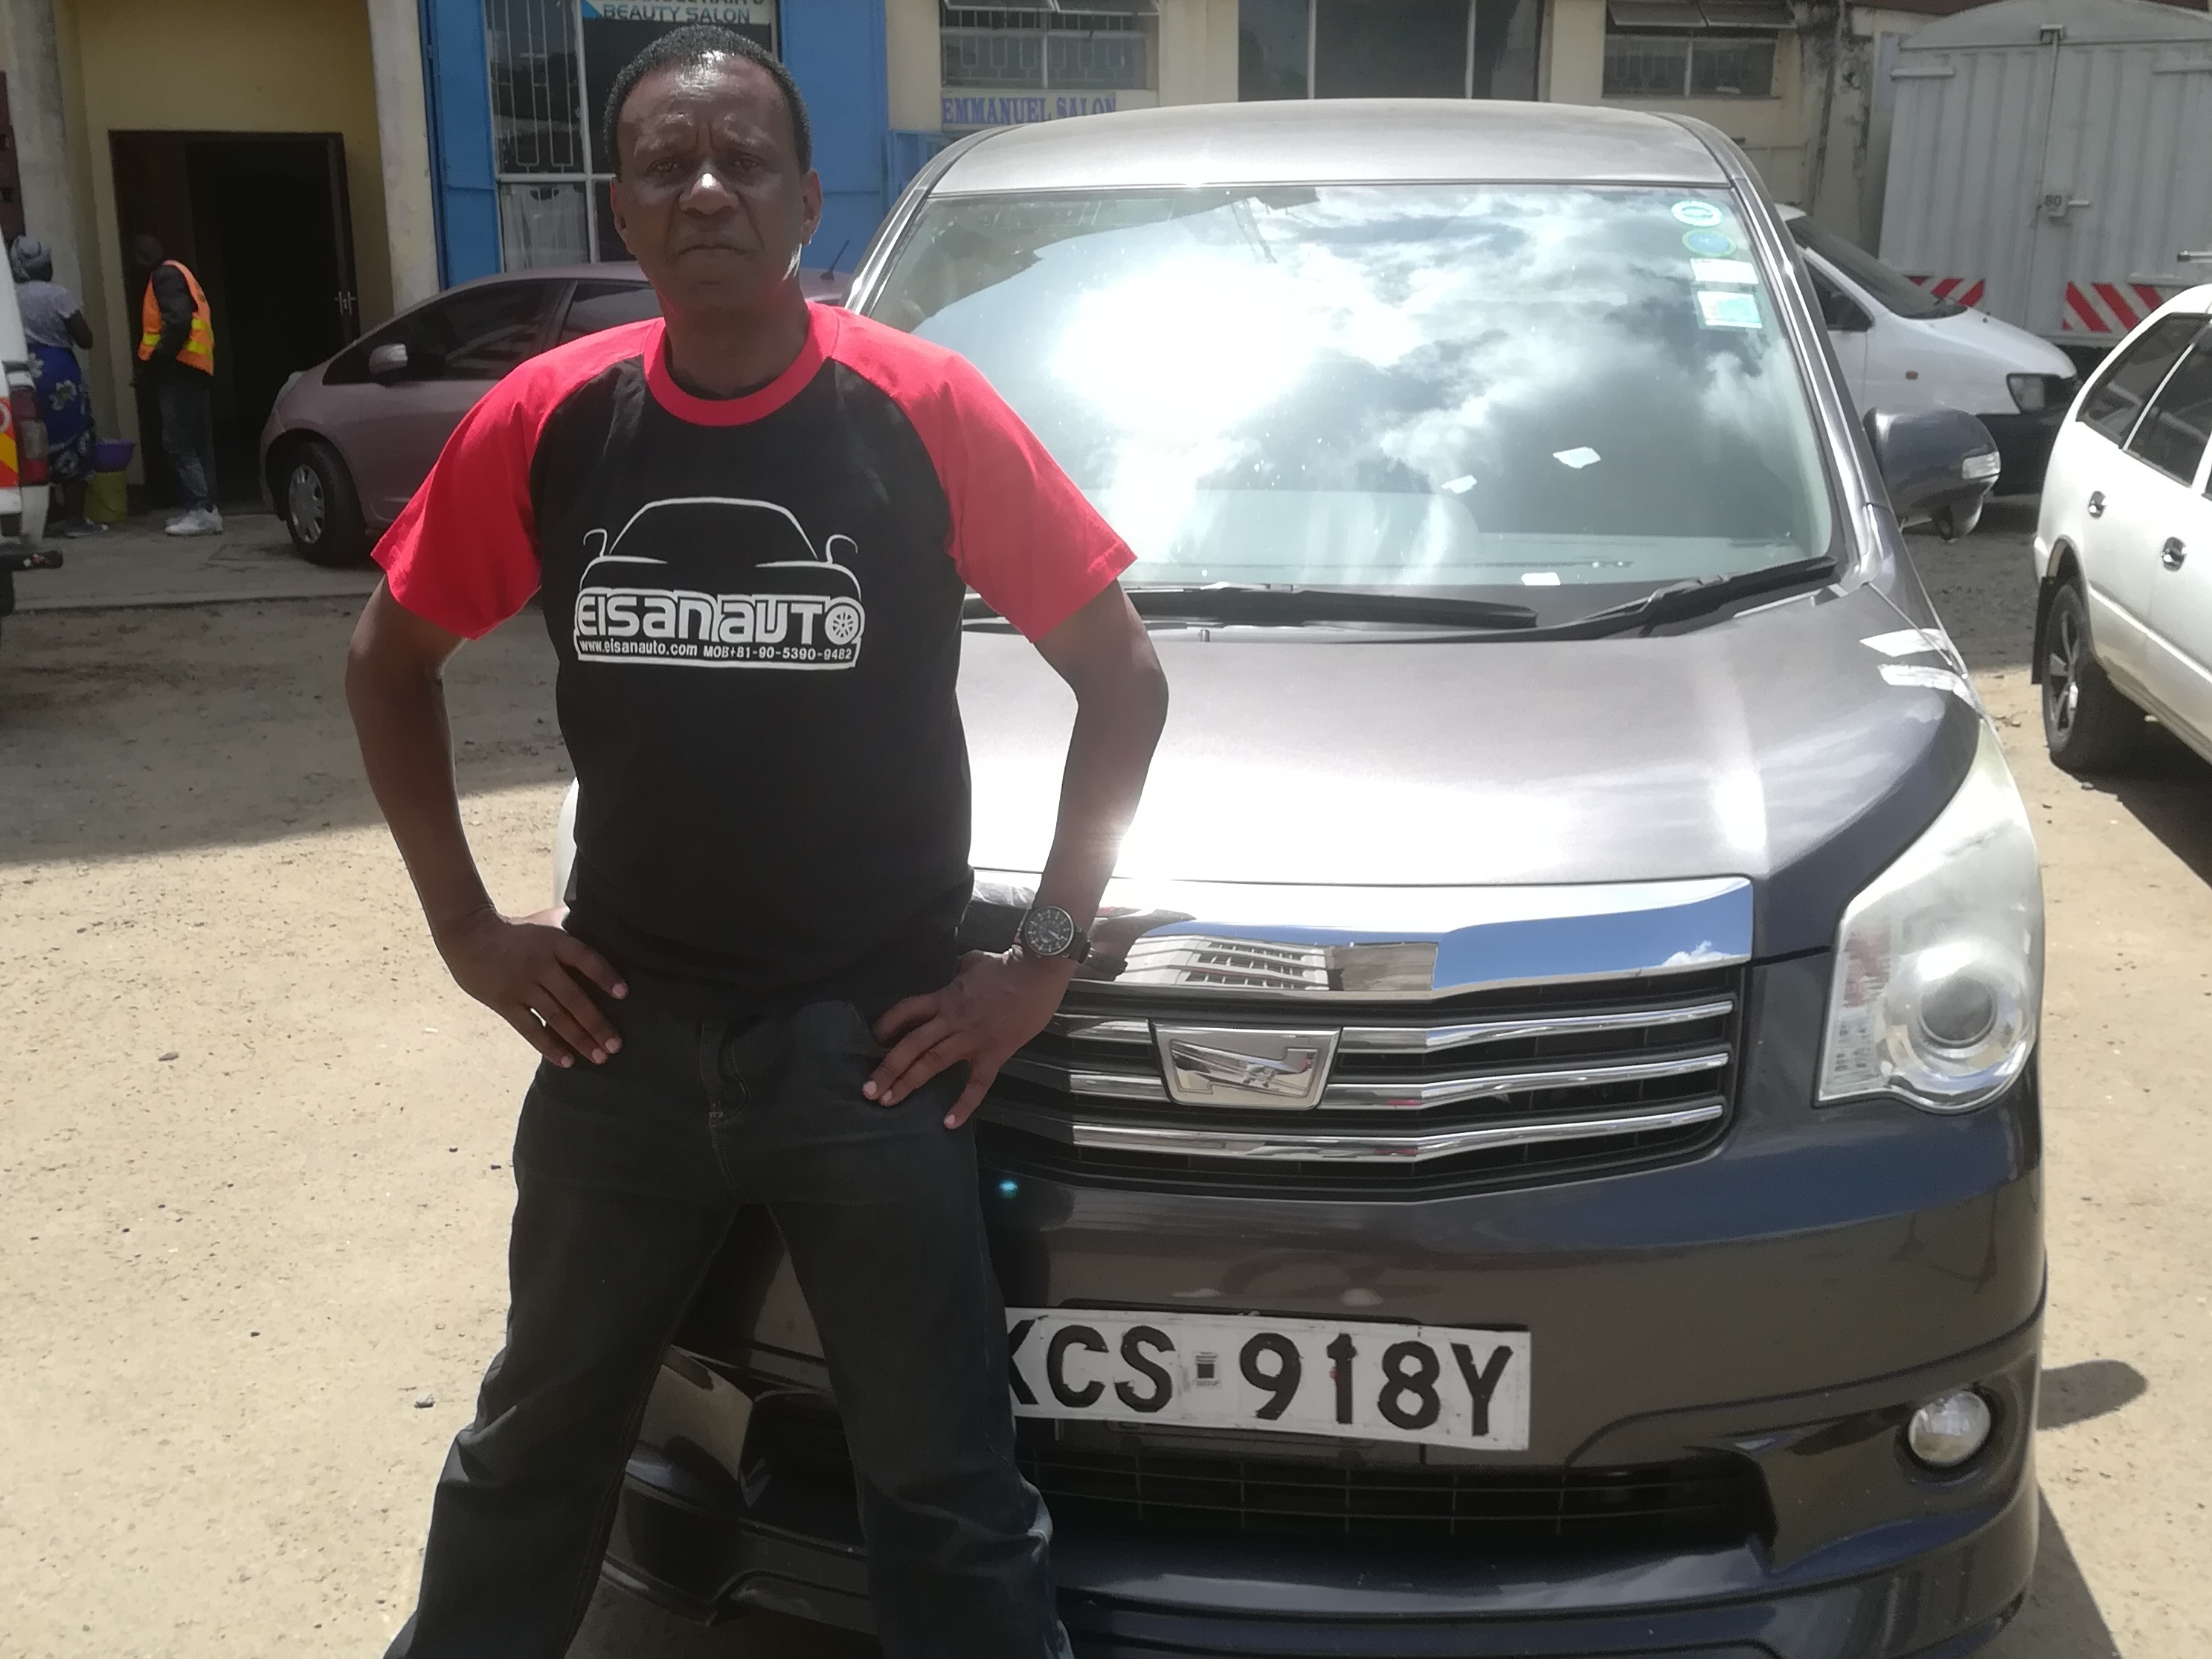 Customer who purchased a car from EISAN CO.,LTD.